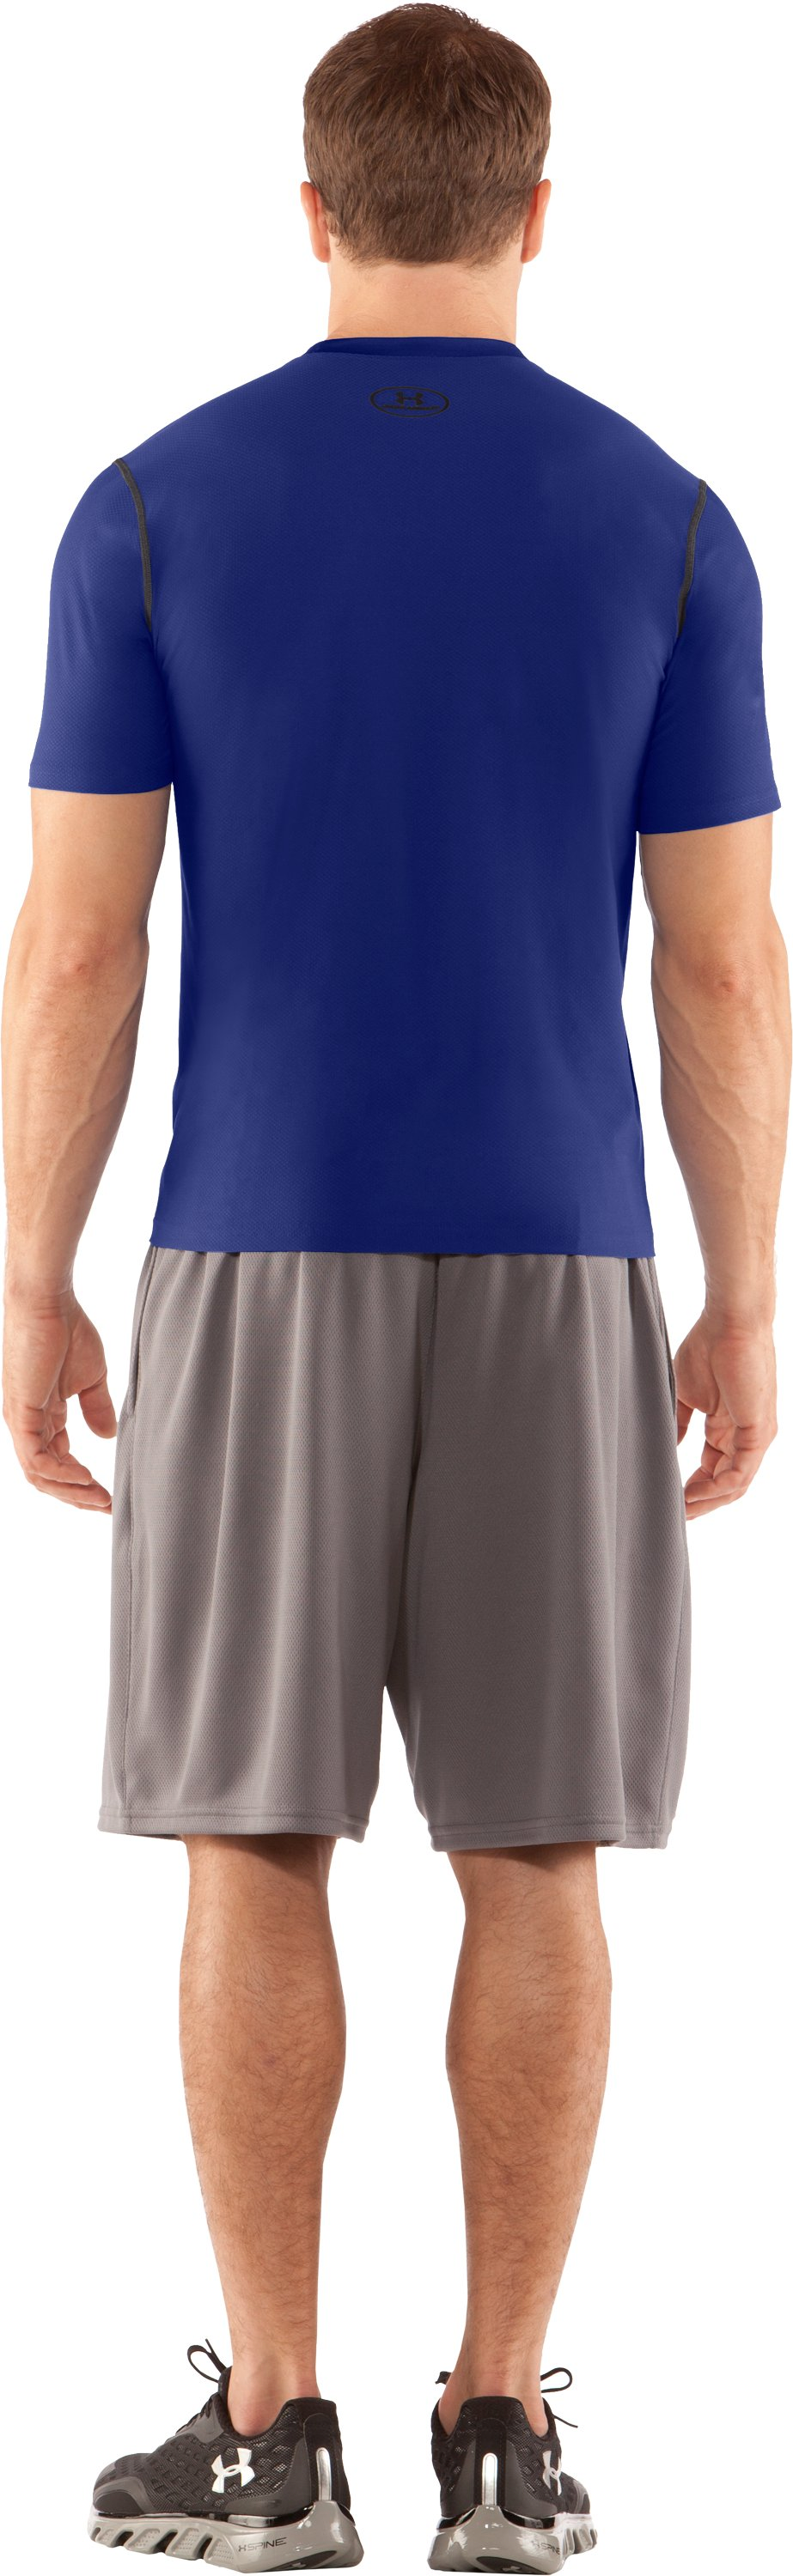 Men's HeatGear® Fitted Short Sleeve Crew, Royal, Back